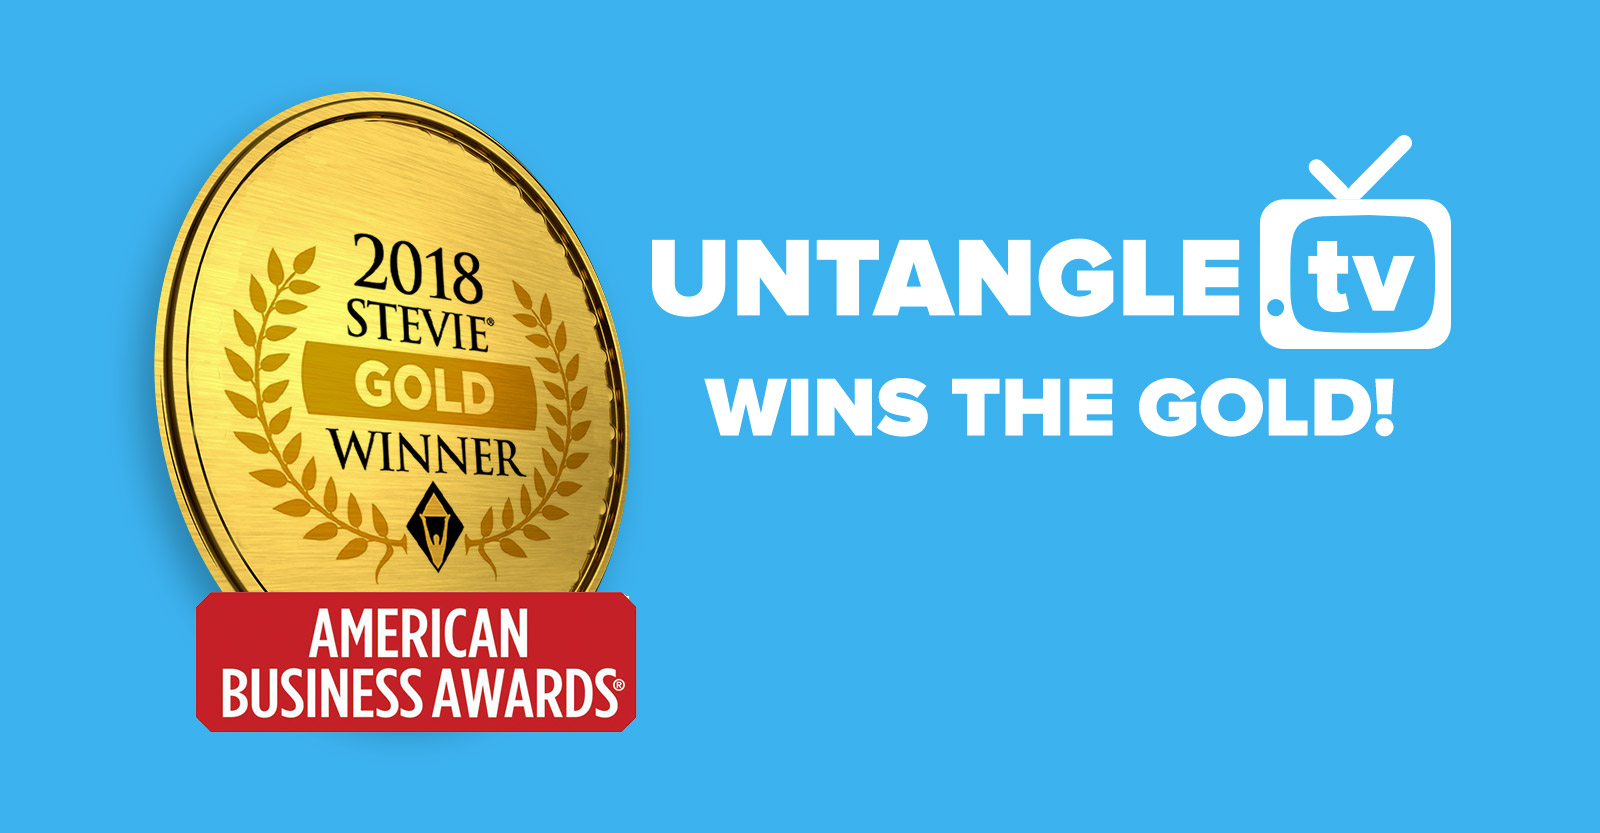 Untangle.TV wins the gold medal